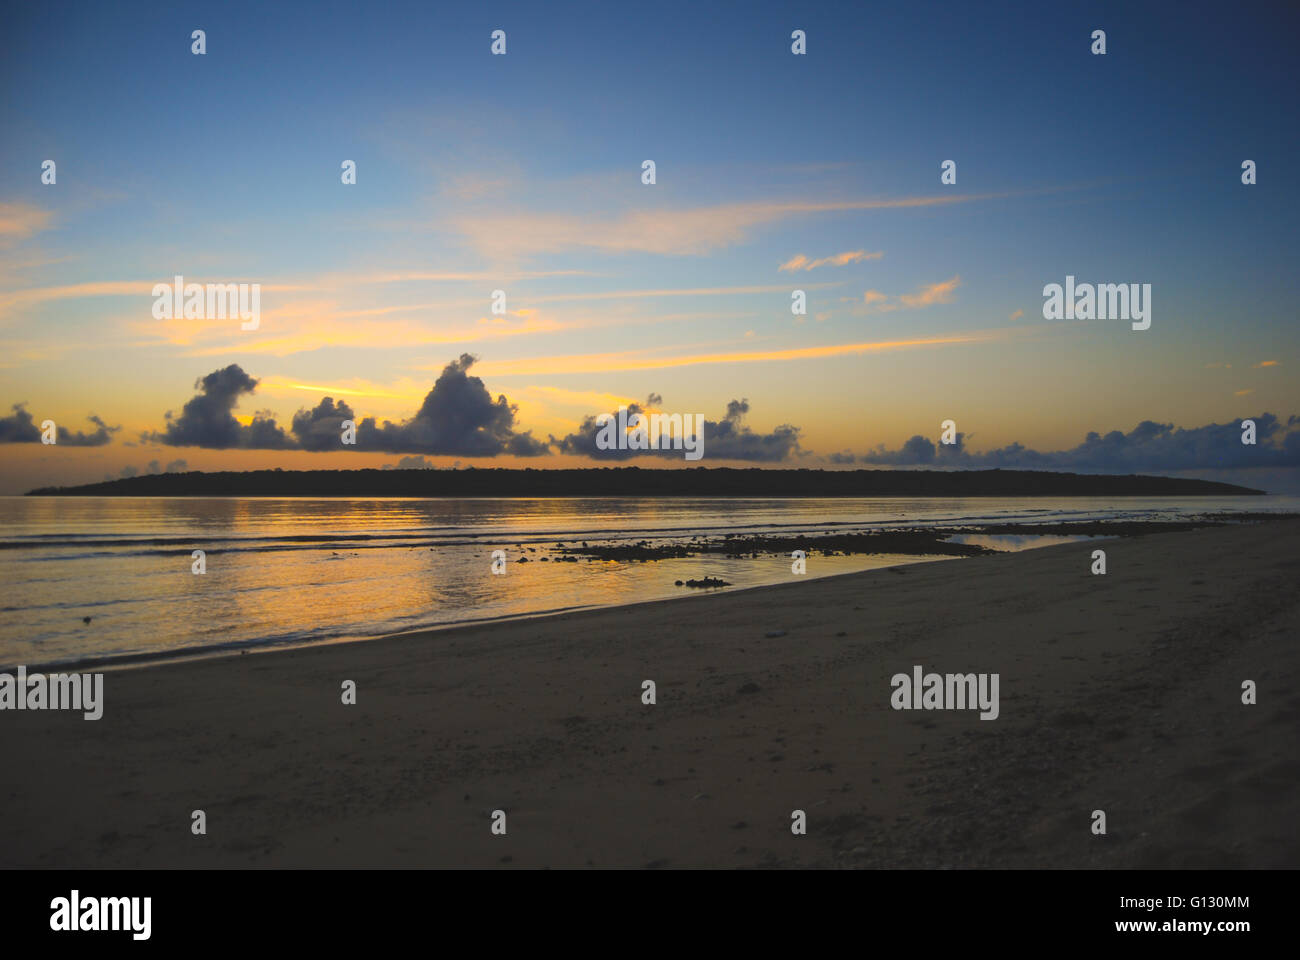 Sunset over Jaco Island in East Timor - Stock Image